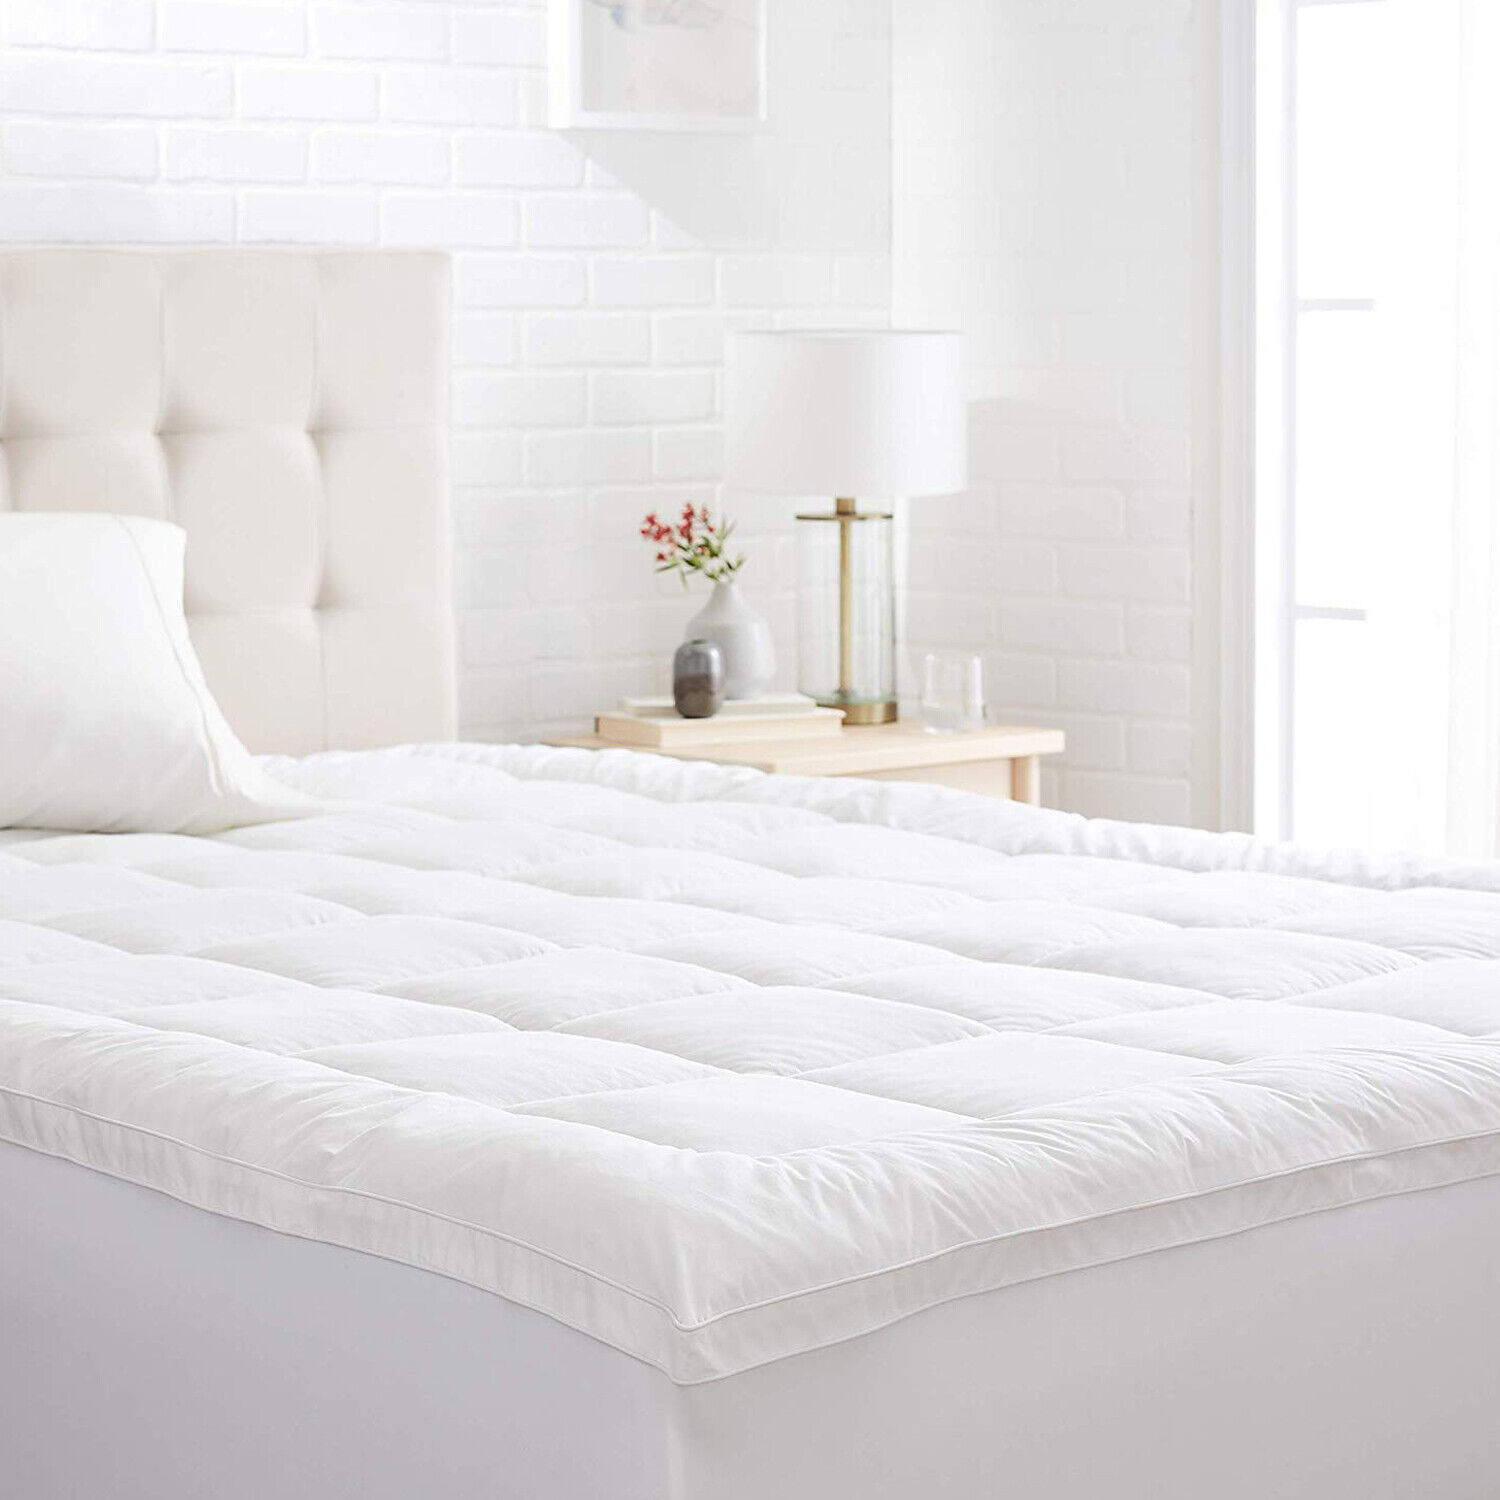 Thick Matress Topper Hypoallergenic Gusseted Down Alternativ